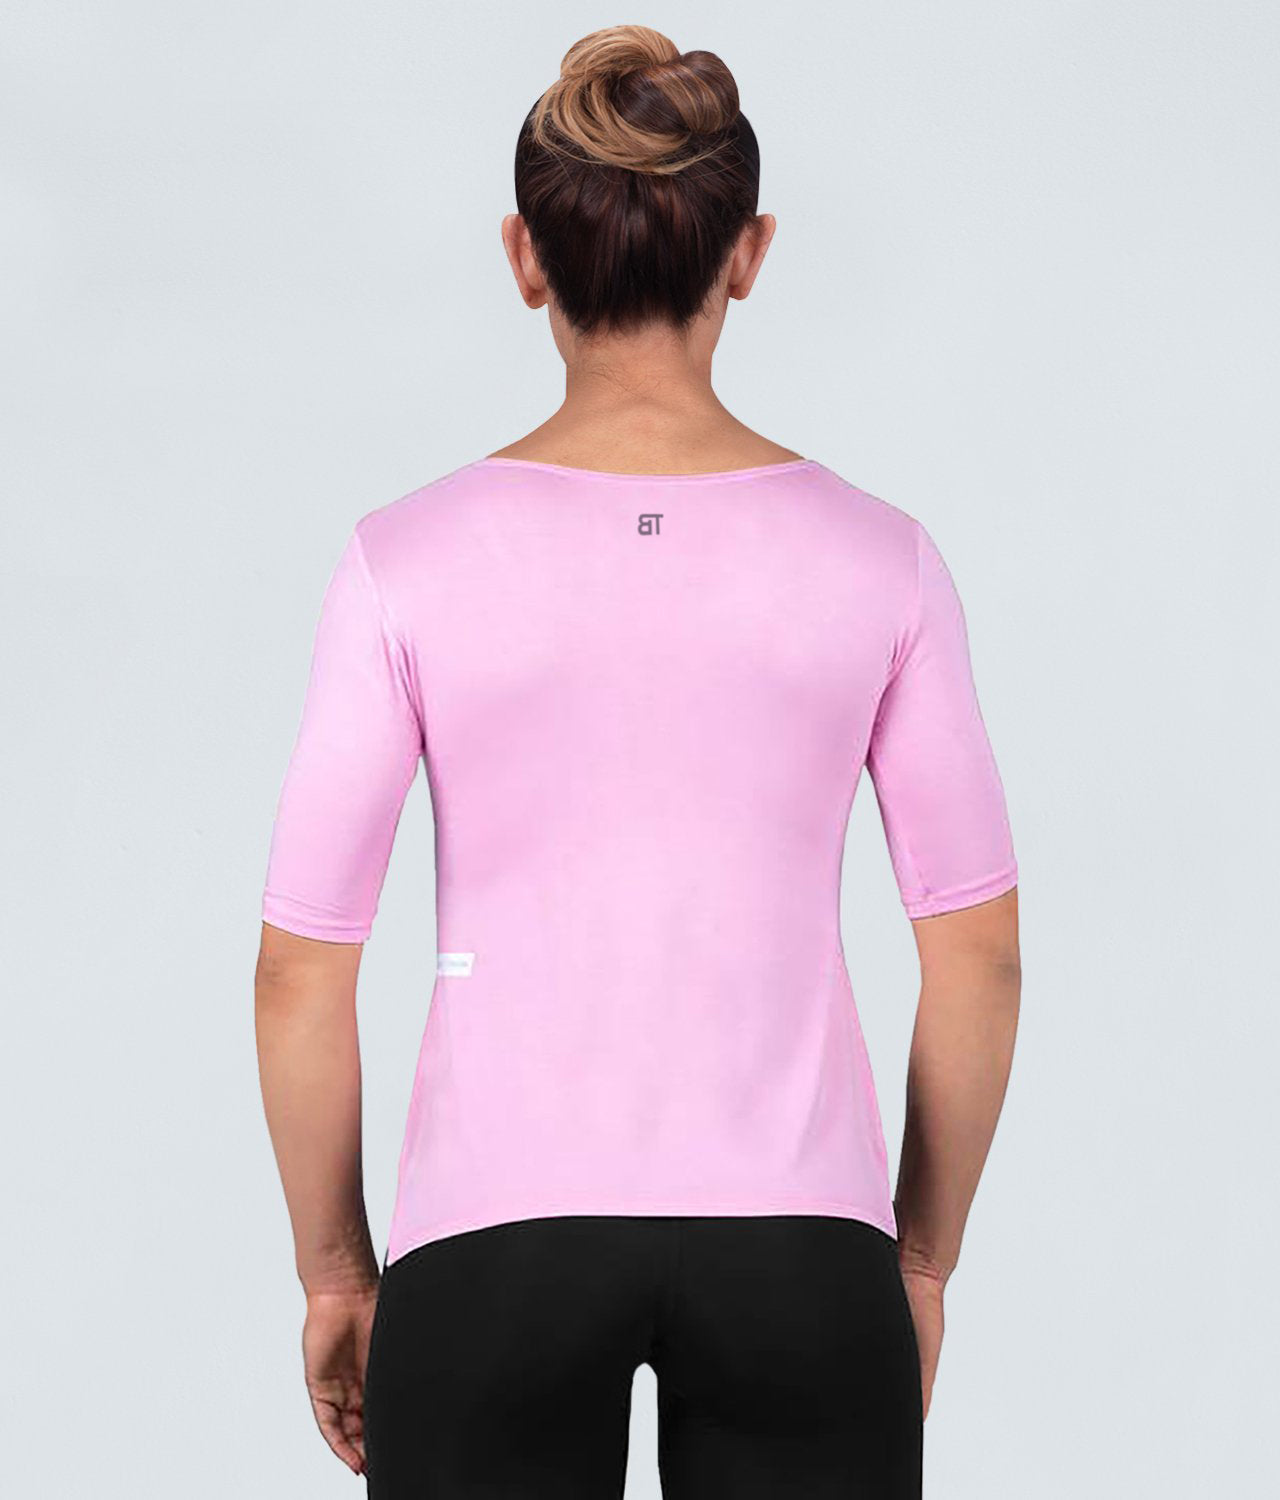 Born Tough True Form Sheer Sleeve loops Pink Short Sleeve Gym Workout Shirt for Women